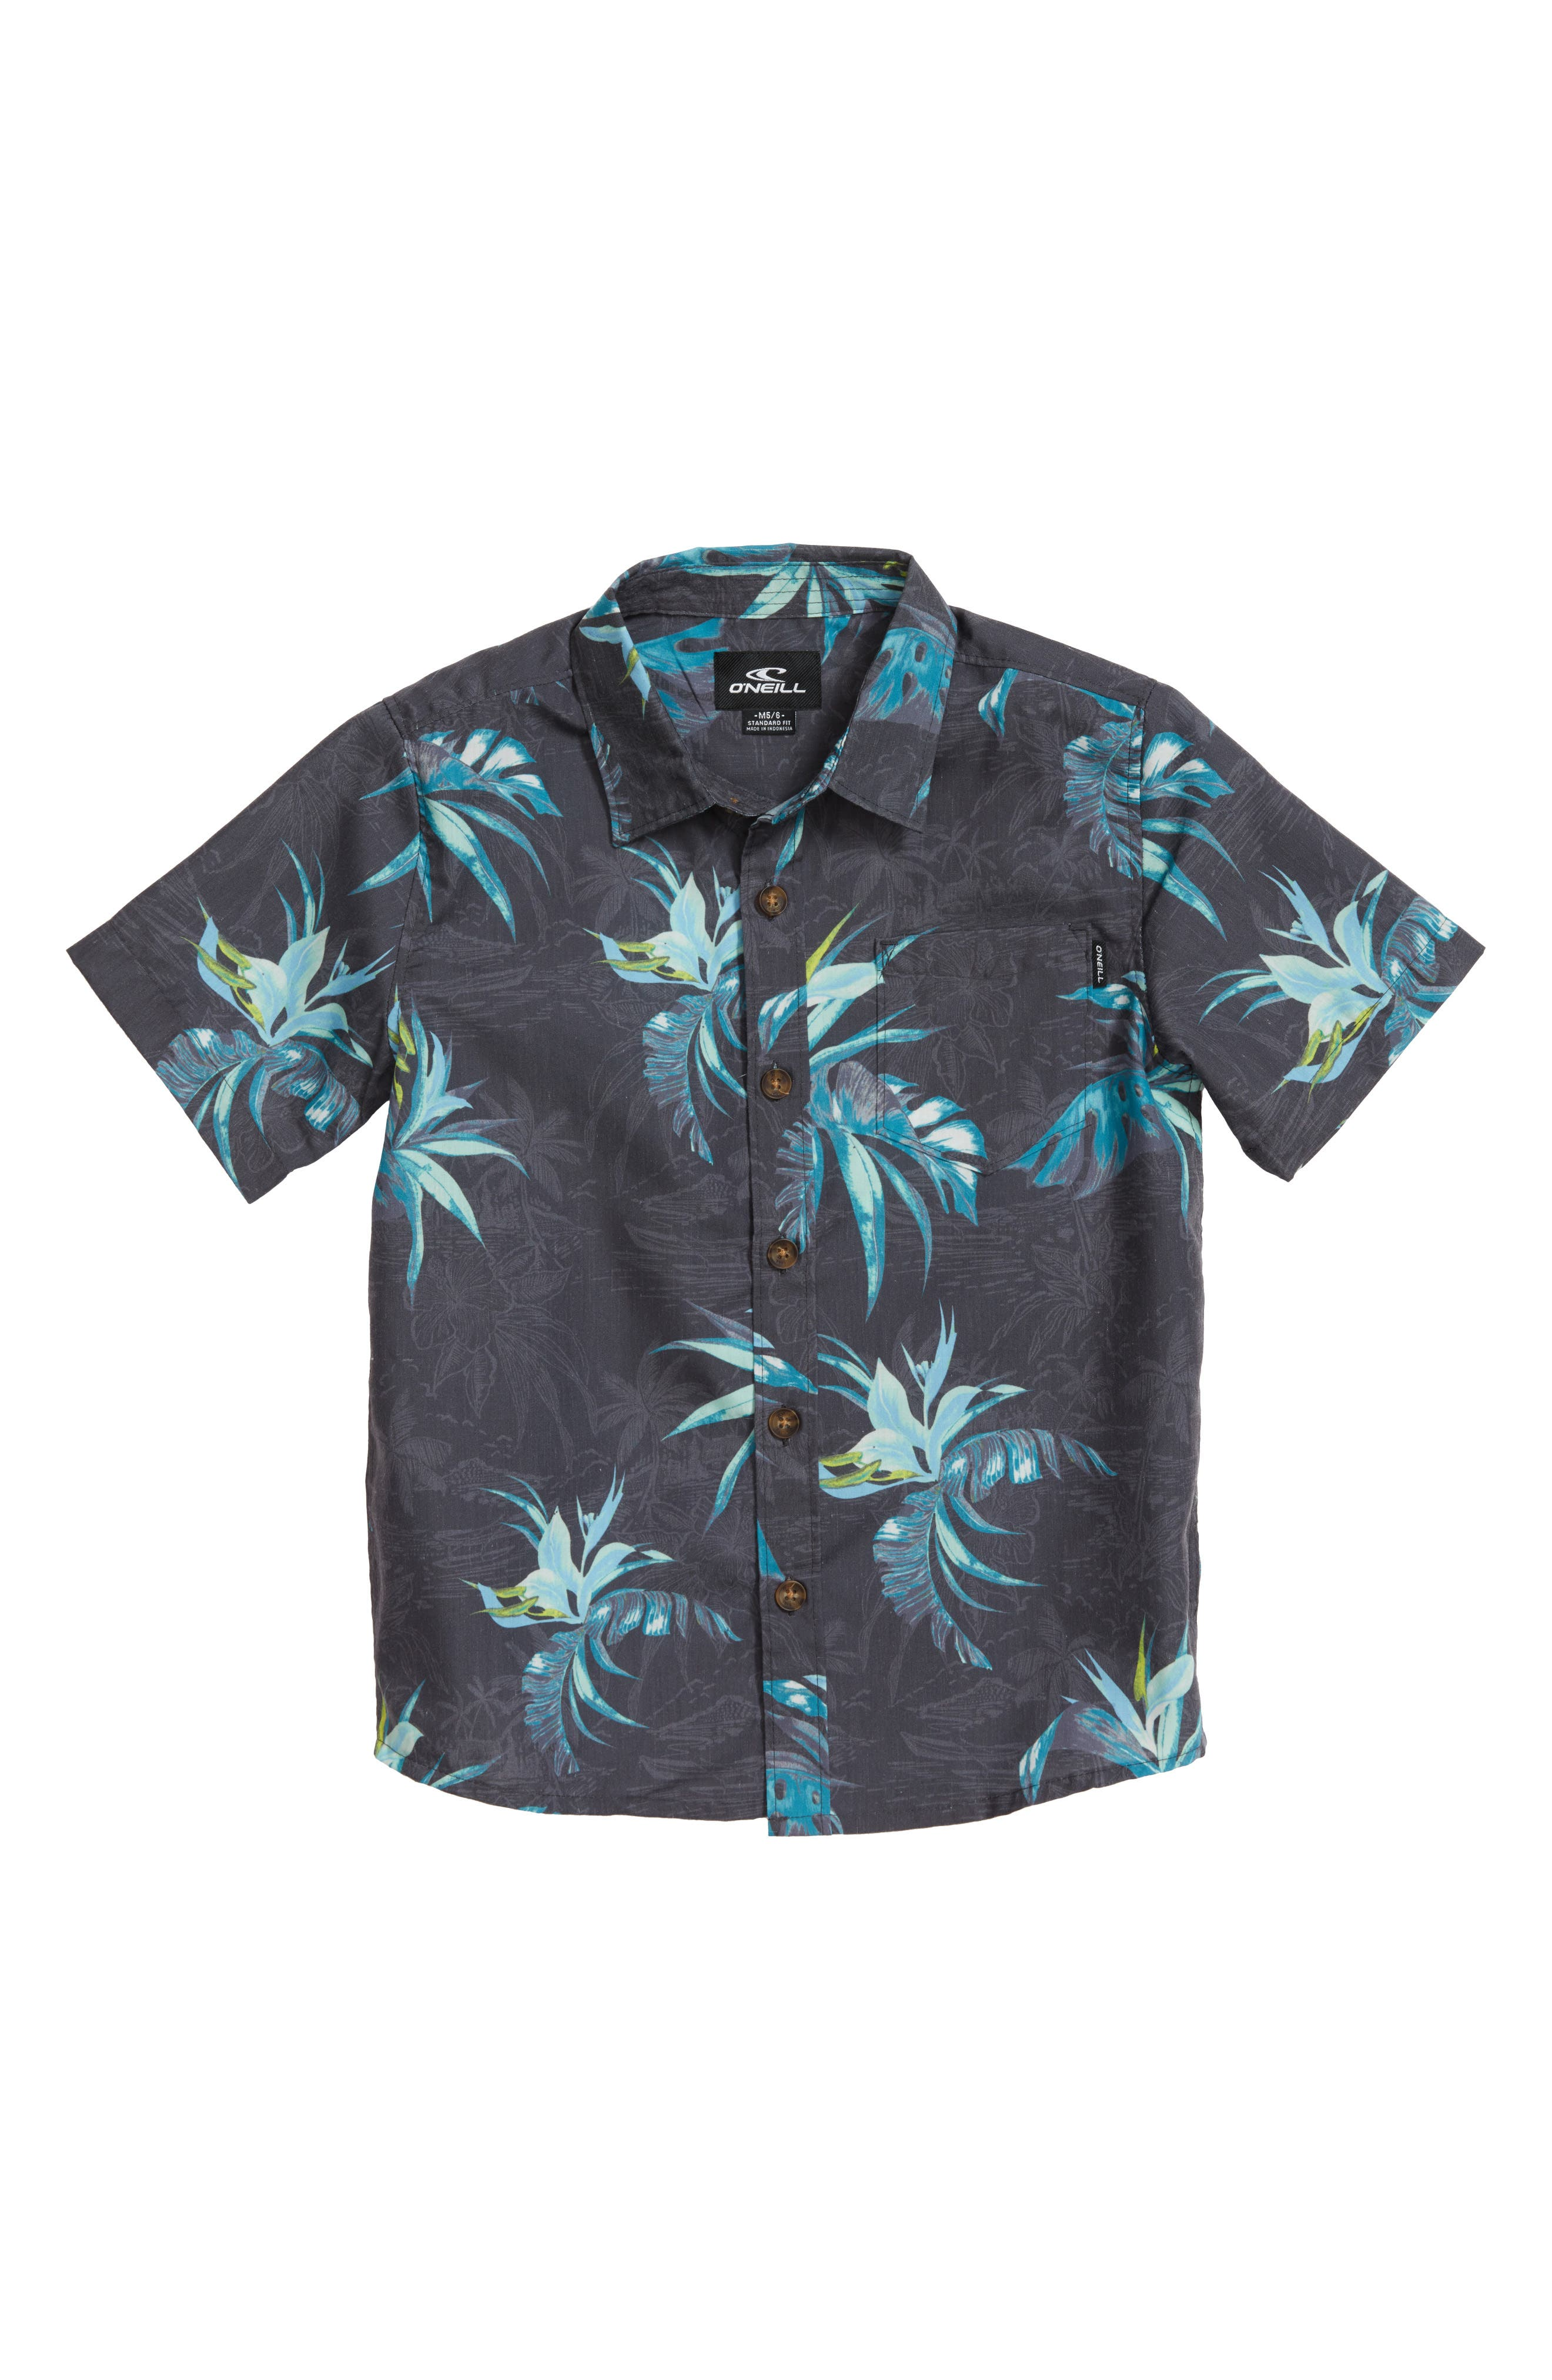 Alternate Image 1 Selected - O'Neill Islander Floral Print Woven Shirt (Toddler Boys)